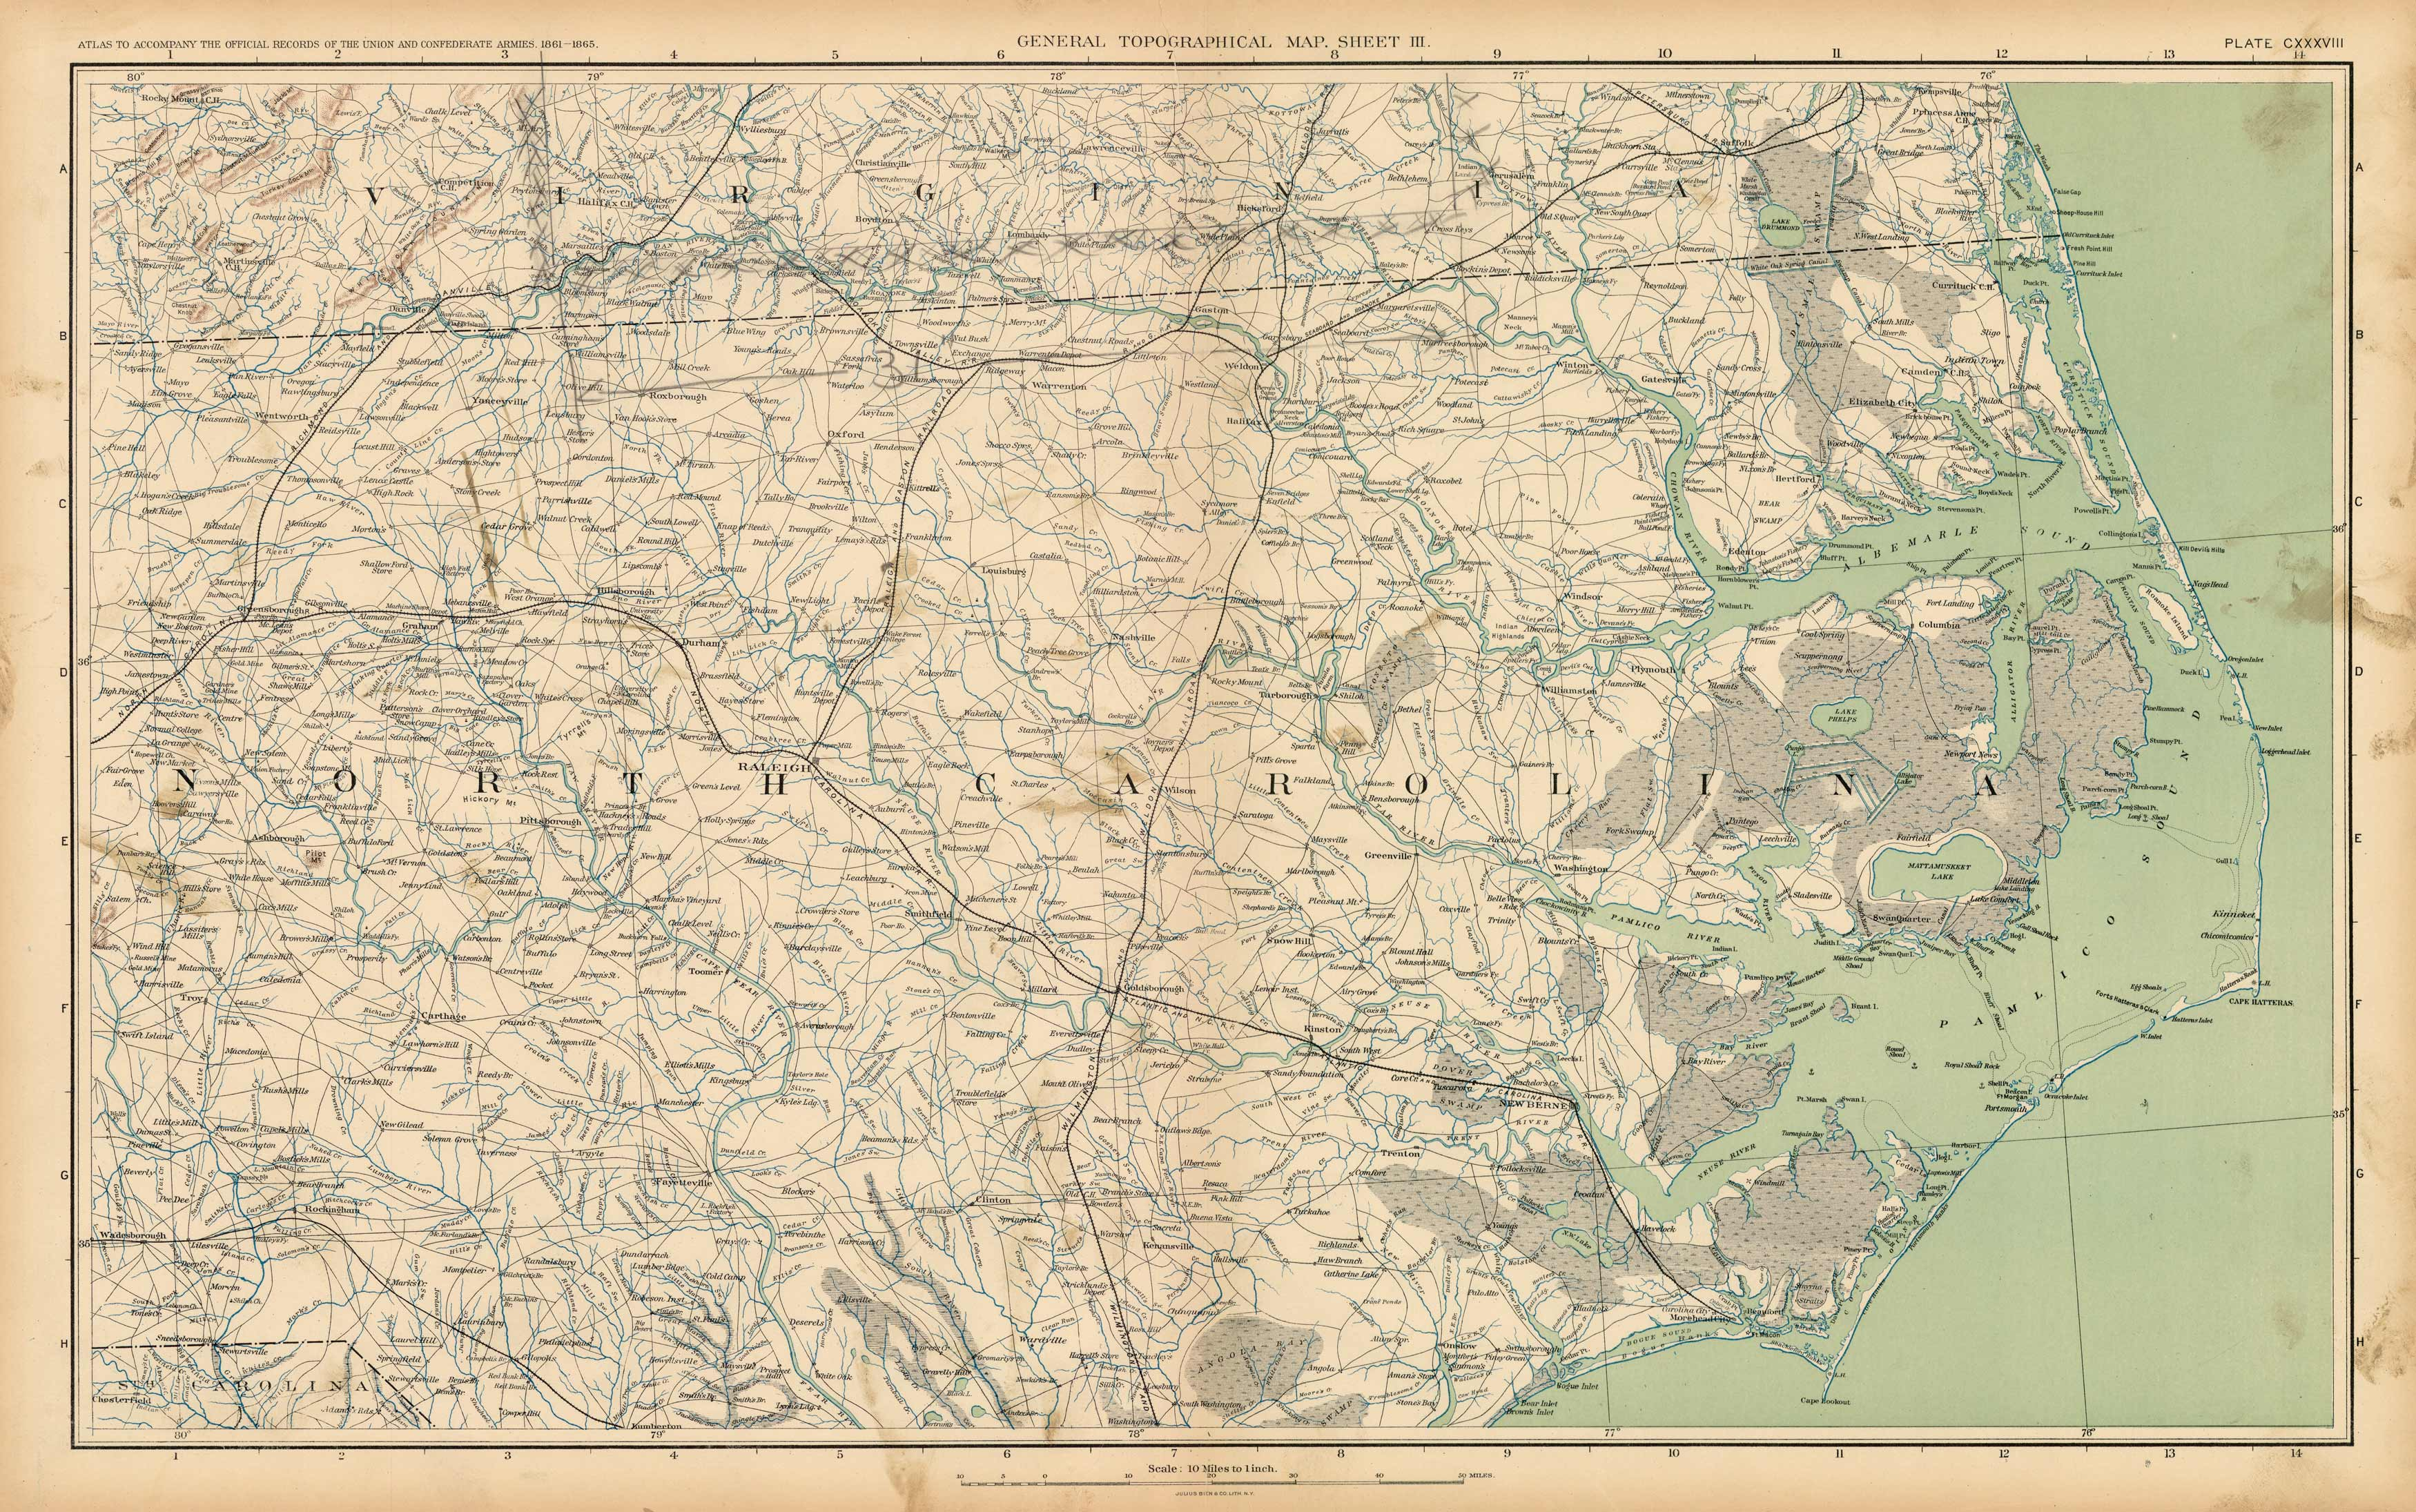 Civil War Atlas; Plate 138; Topographical Map of the Theatre of War; North Carolina